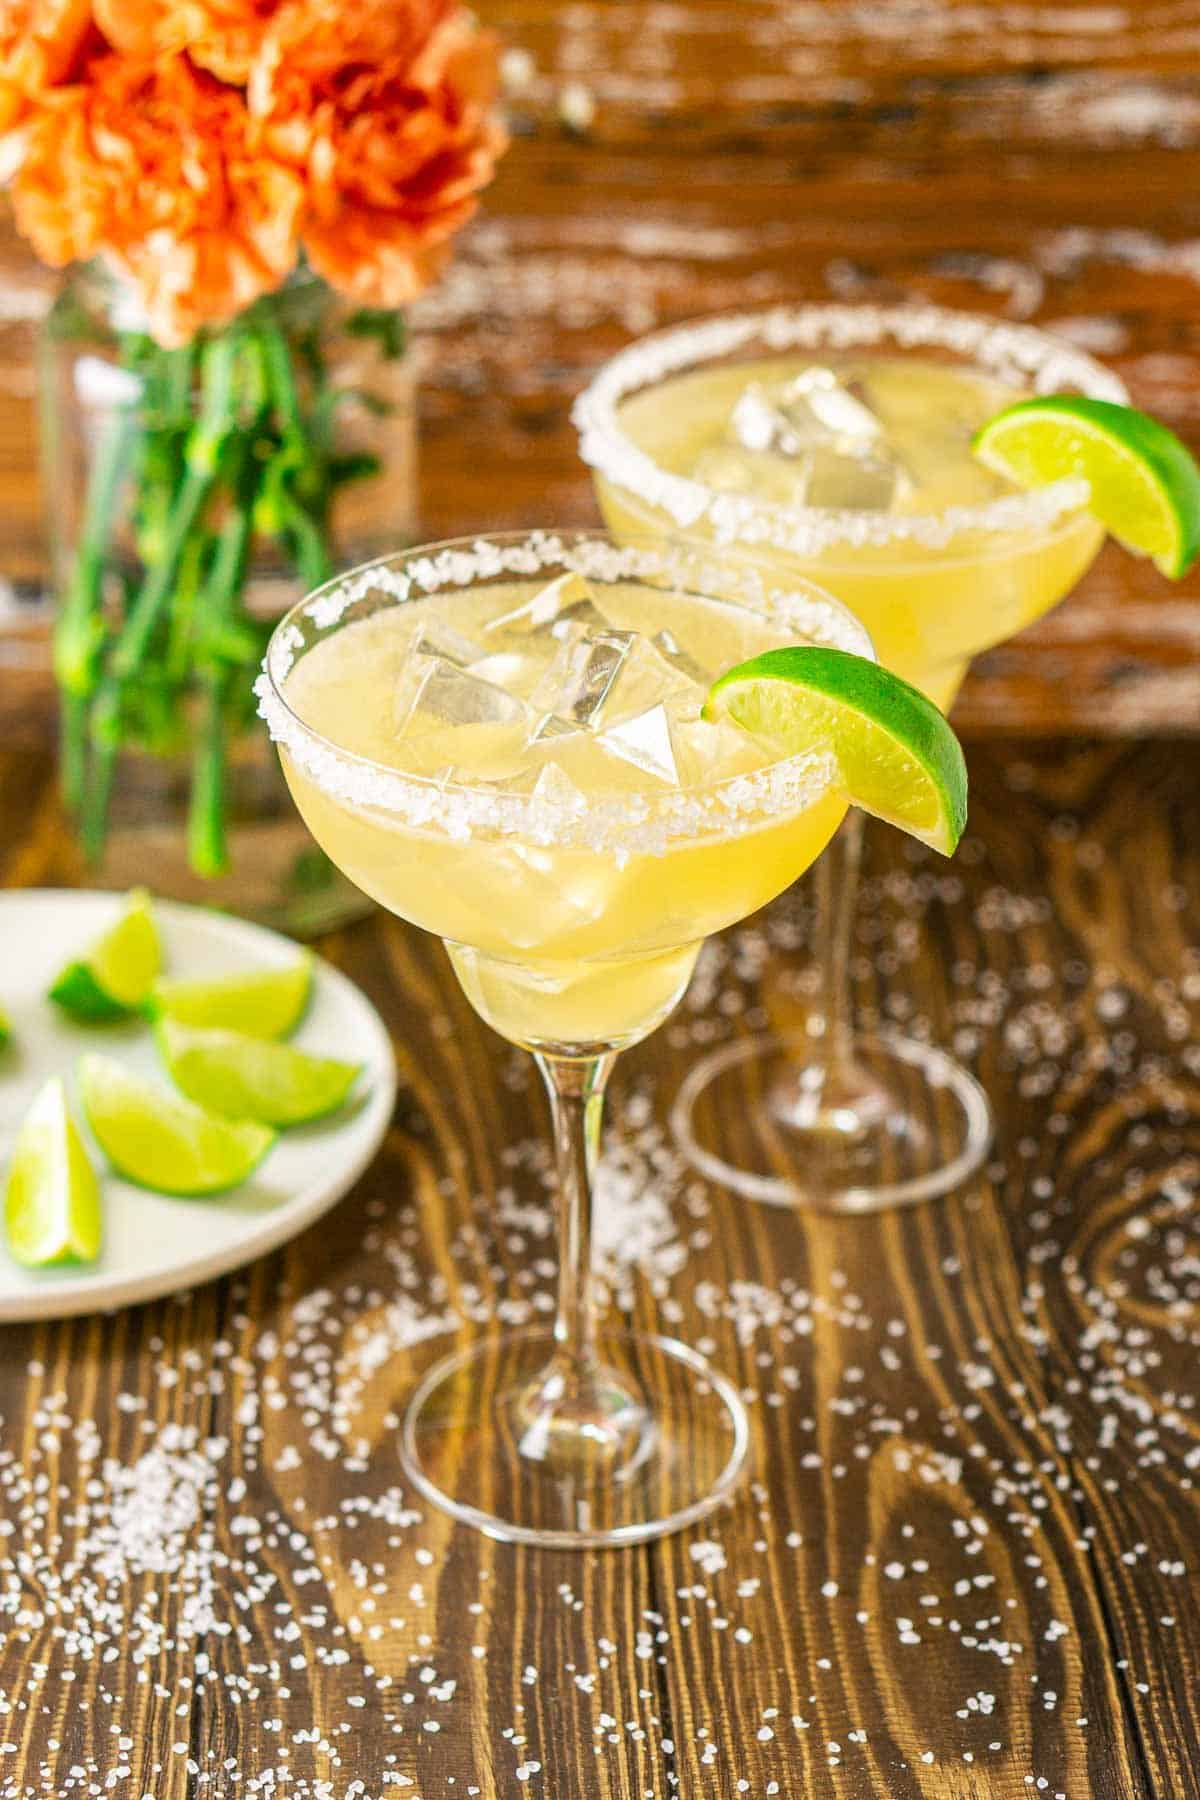 Looking down at two Cadillac margaritas with a plate of limes to the left.